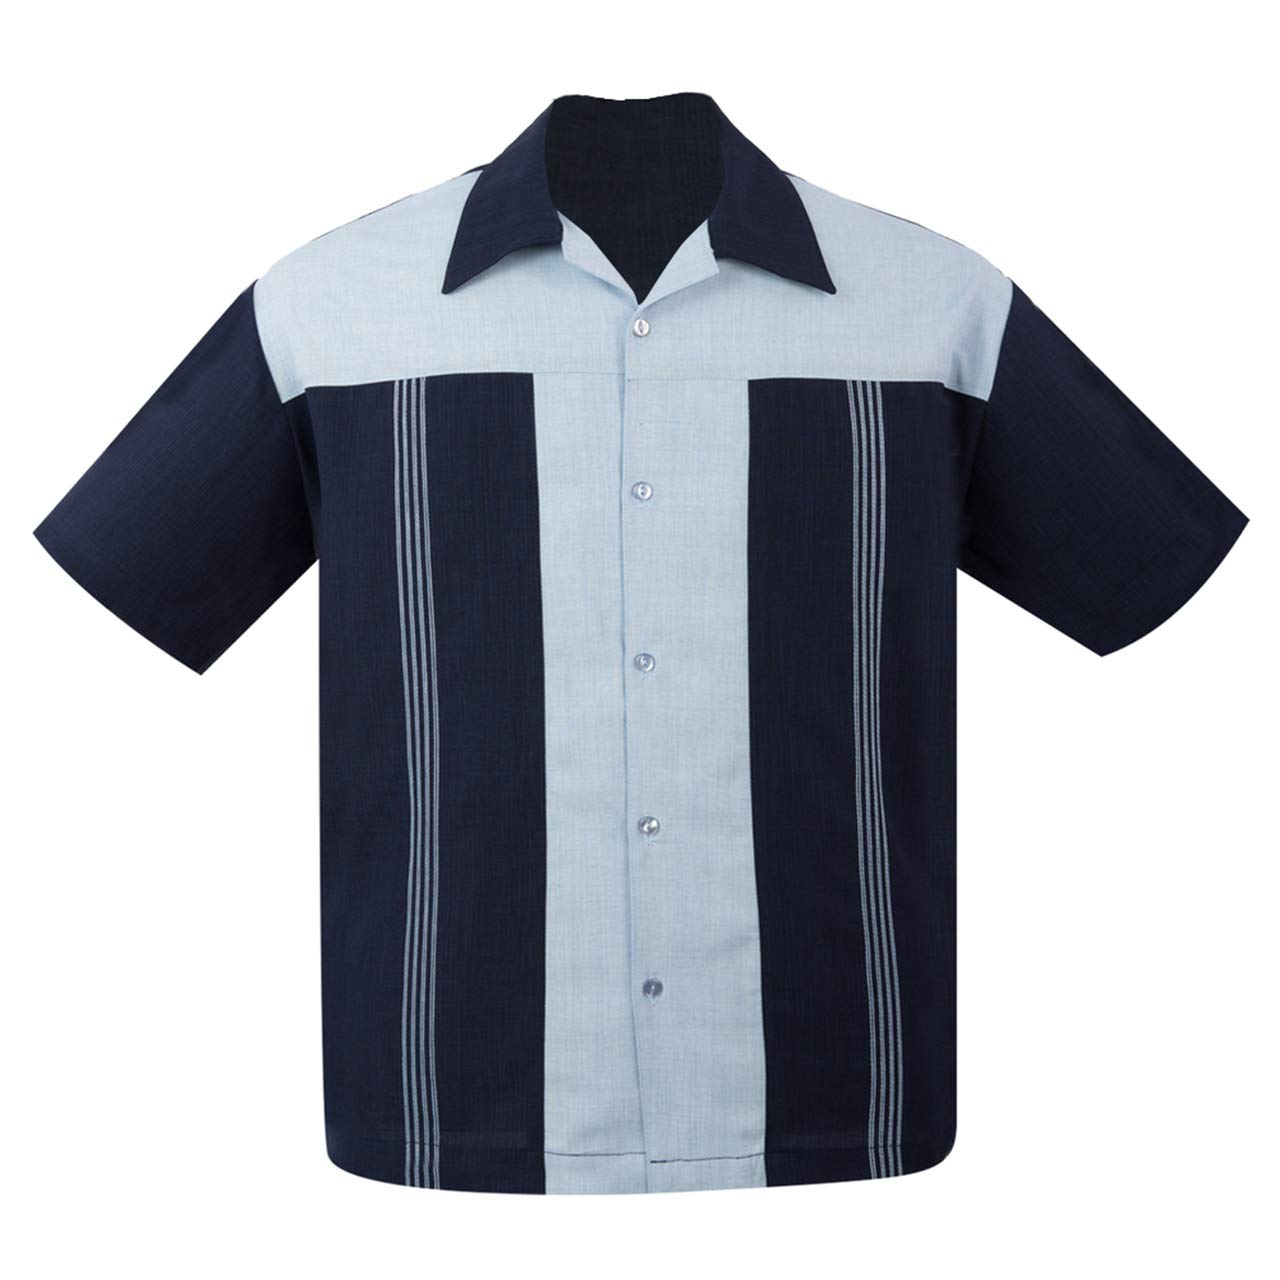 1950s Men's Clothing Steady Clothing Mens The Oswald Button Up Bowling Shirt Navy $59.99 AT vintagedancer.com